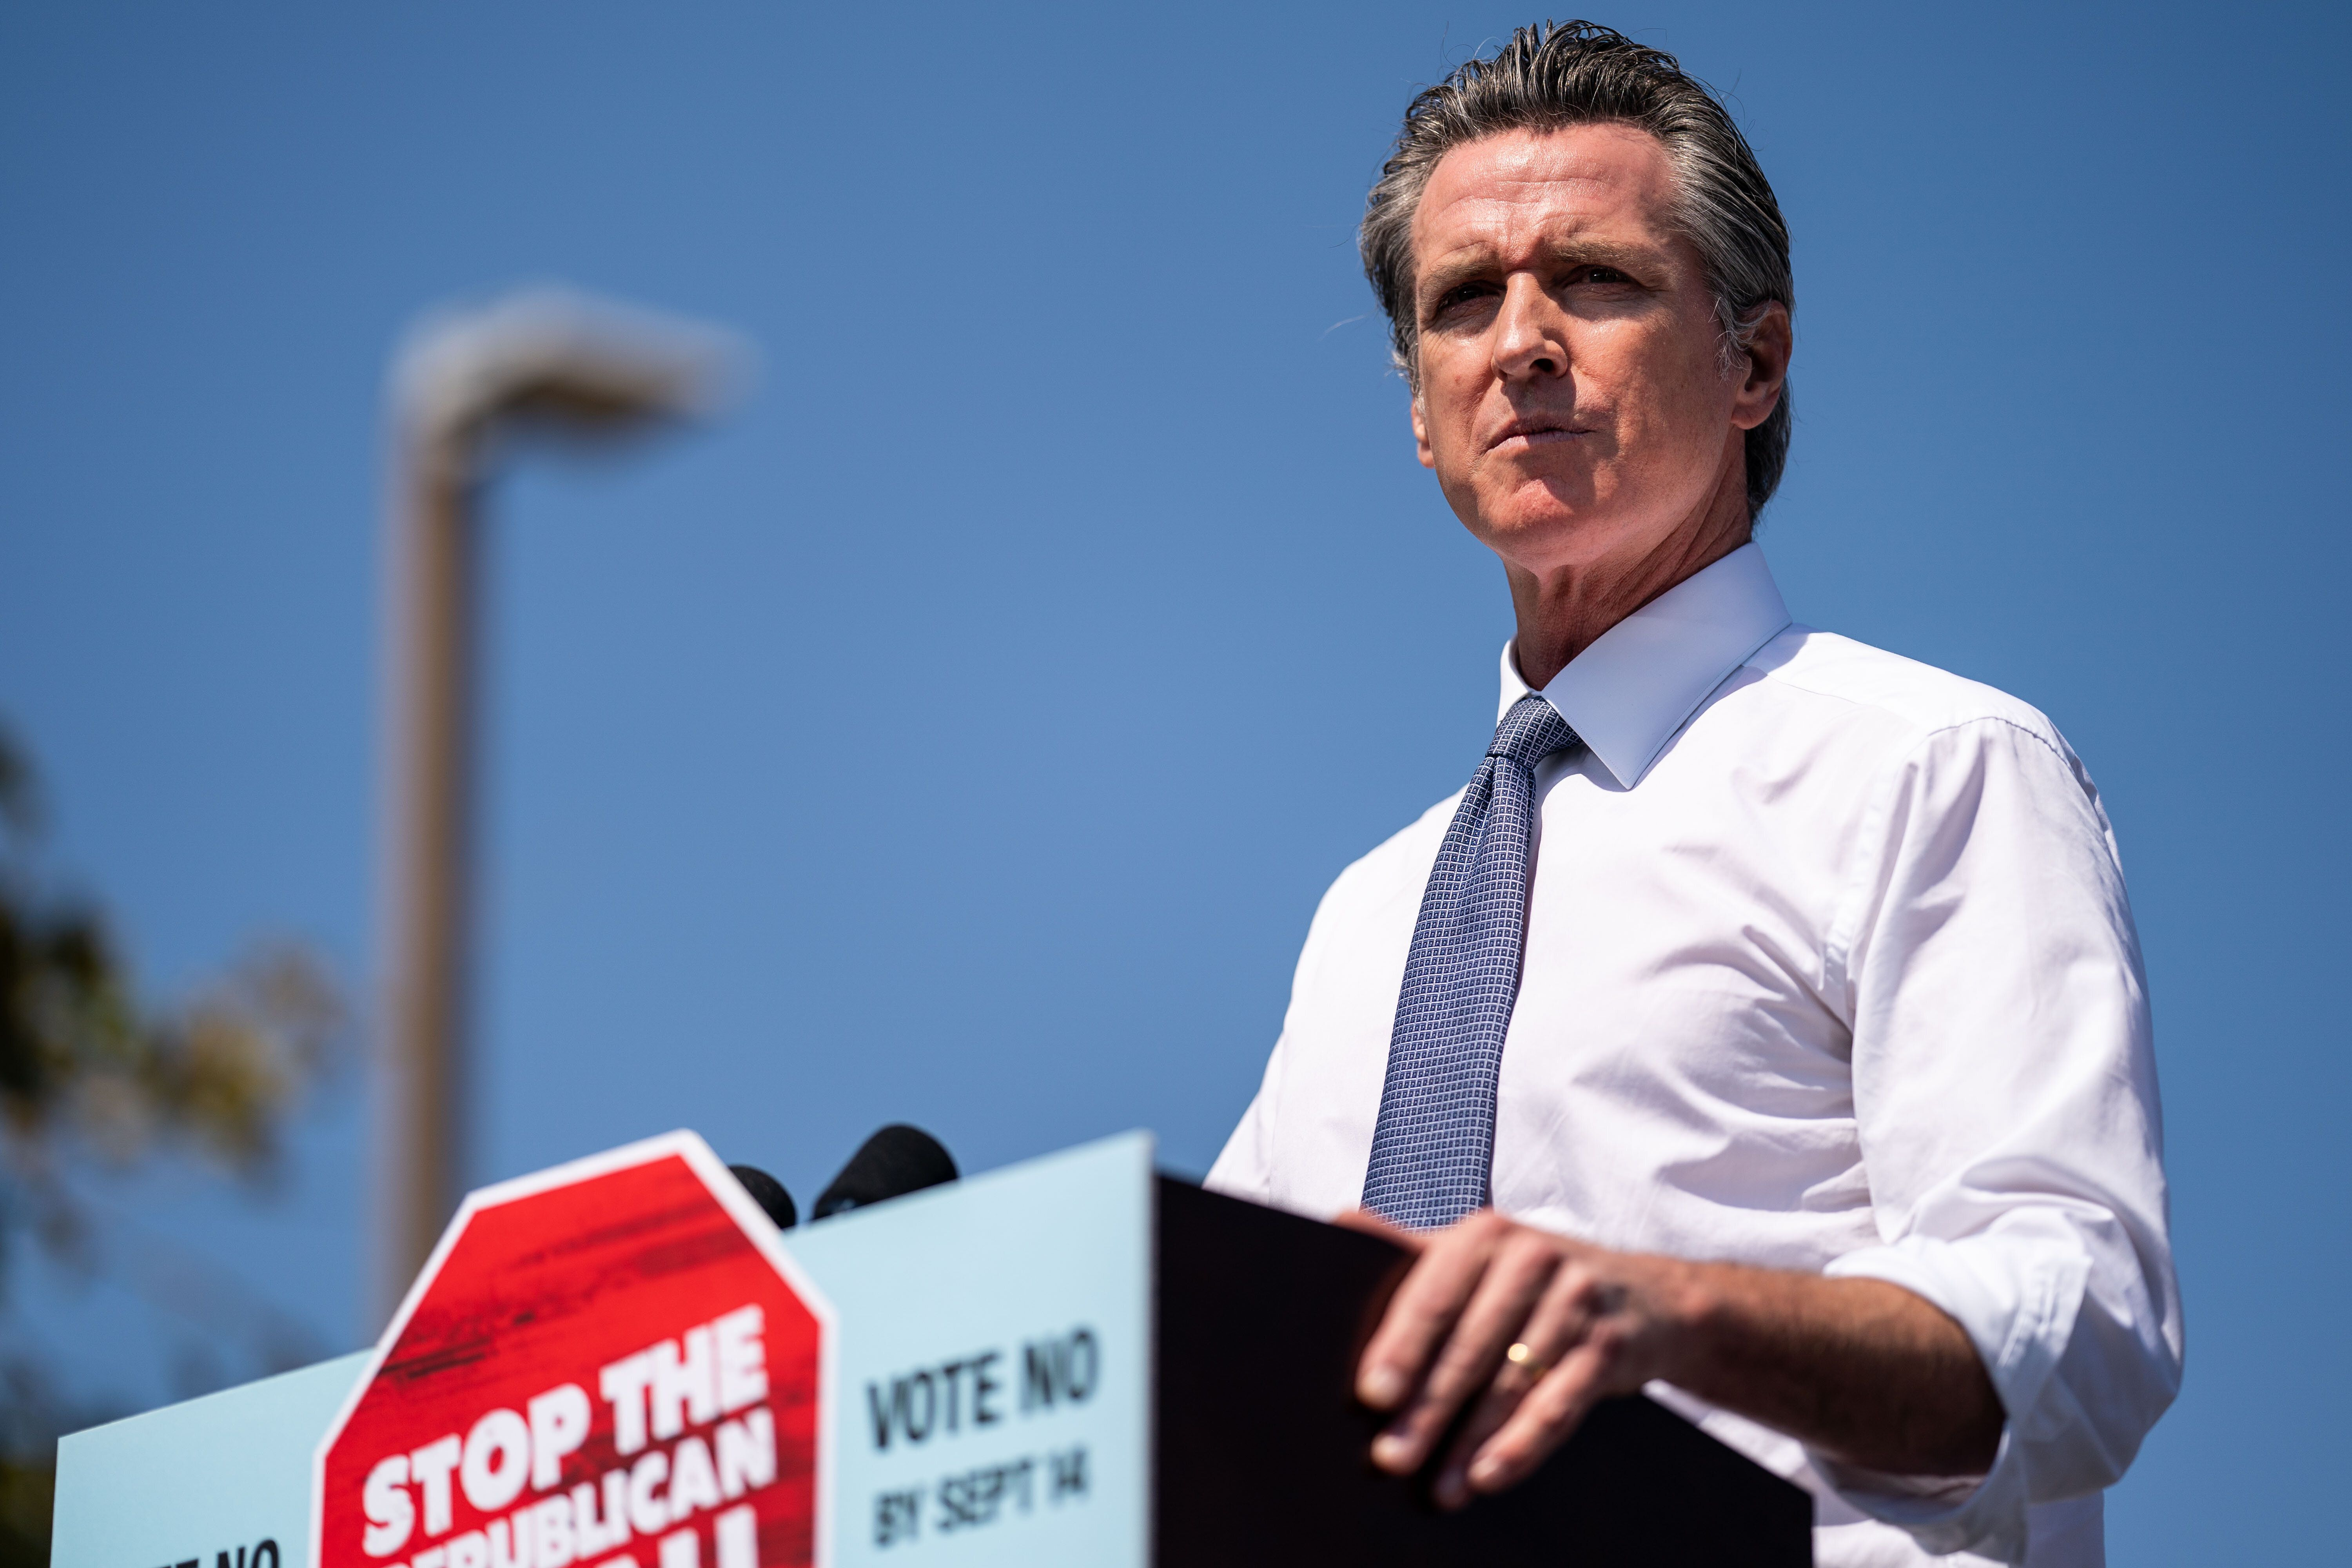 California Gov. Gavin Newsom (D) is expected to survive the recall effort on Tuesday. He benefited from a Republican opponent